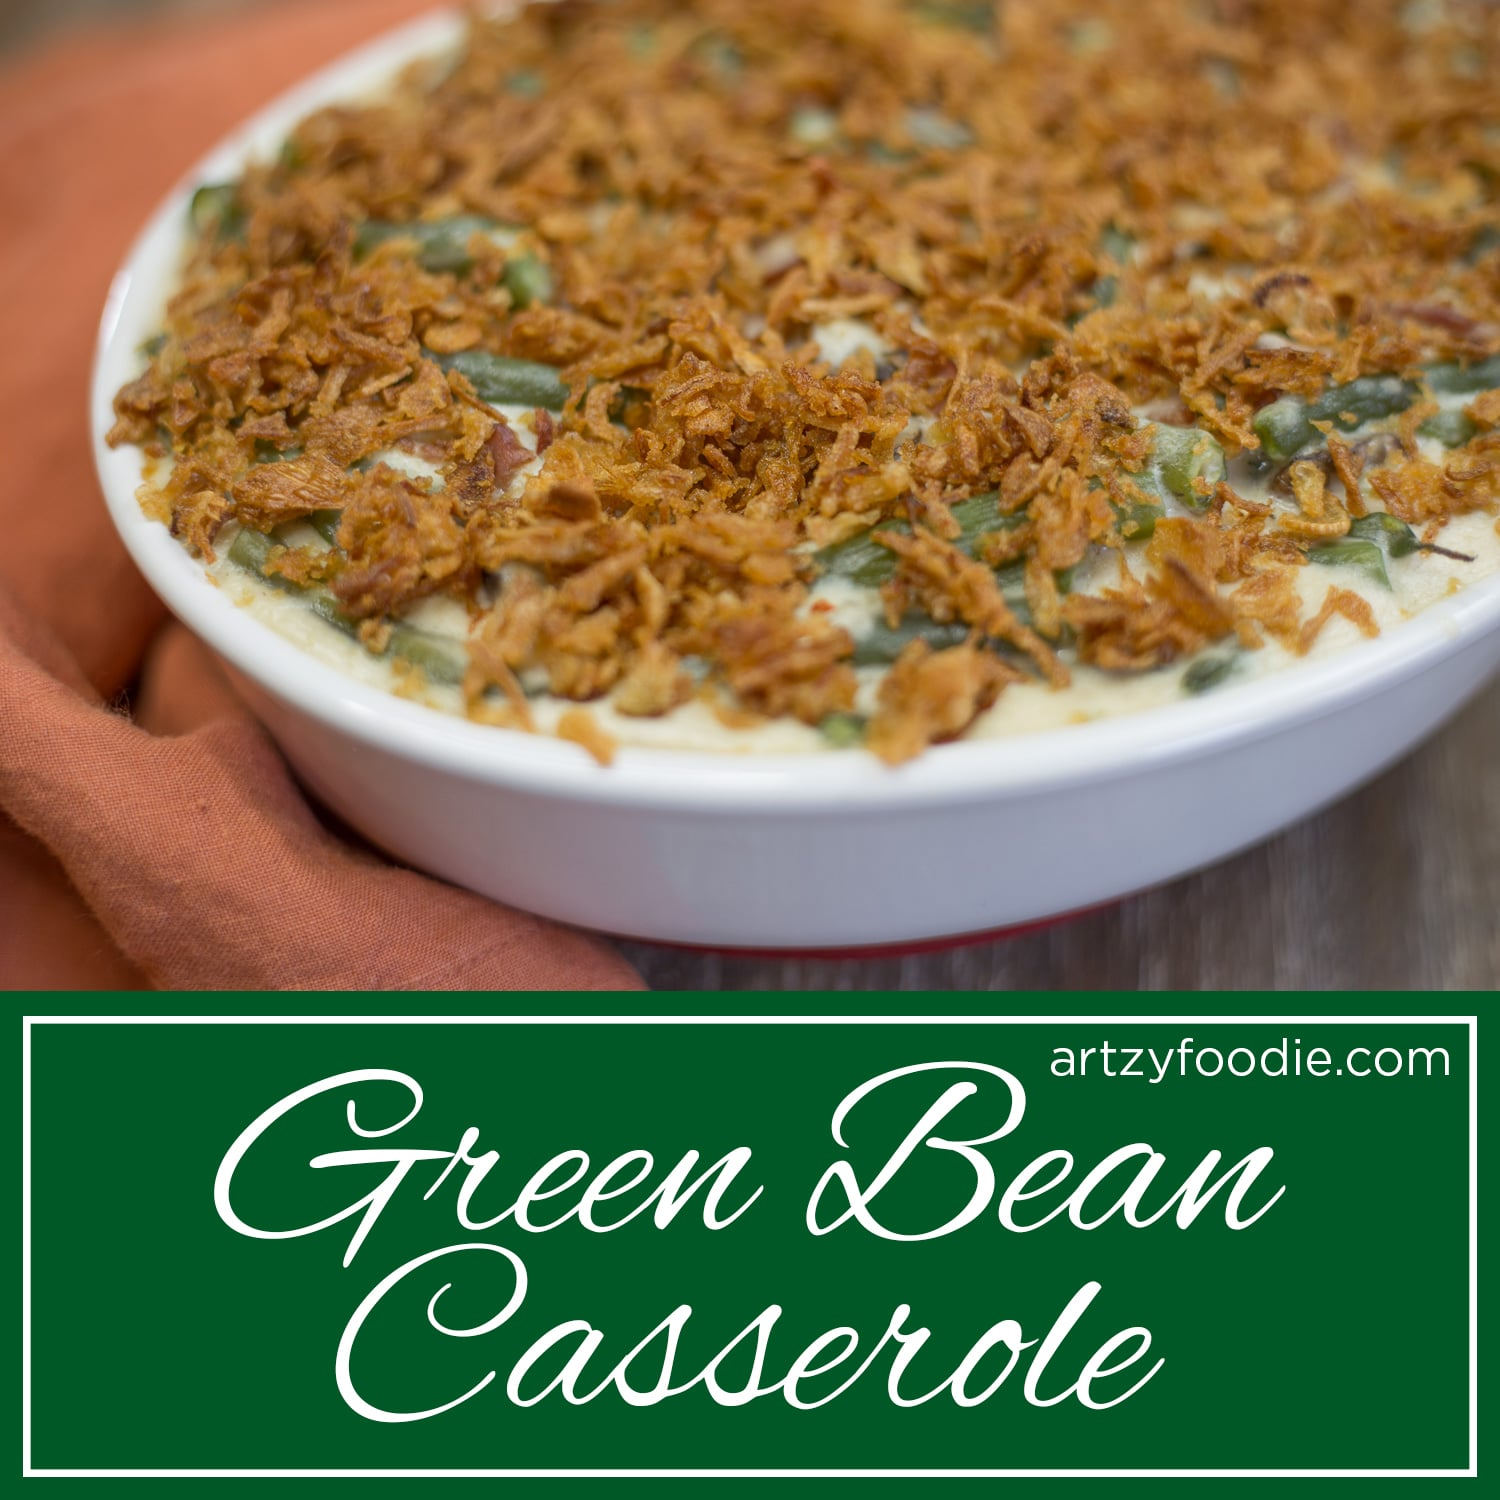 This green bean casserole is so delicious! You can taste the smokiness from the bacon, the nuttiness of the parmesan cheese, and the tang from the sour cream. Even your pickiest eater won't be able to resist this dish!